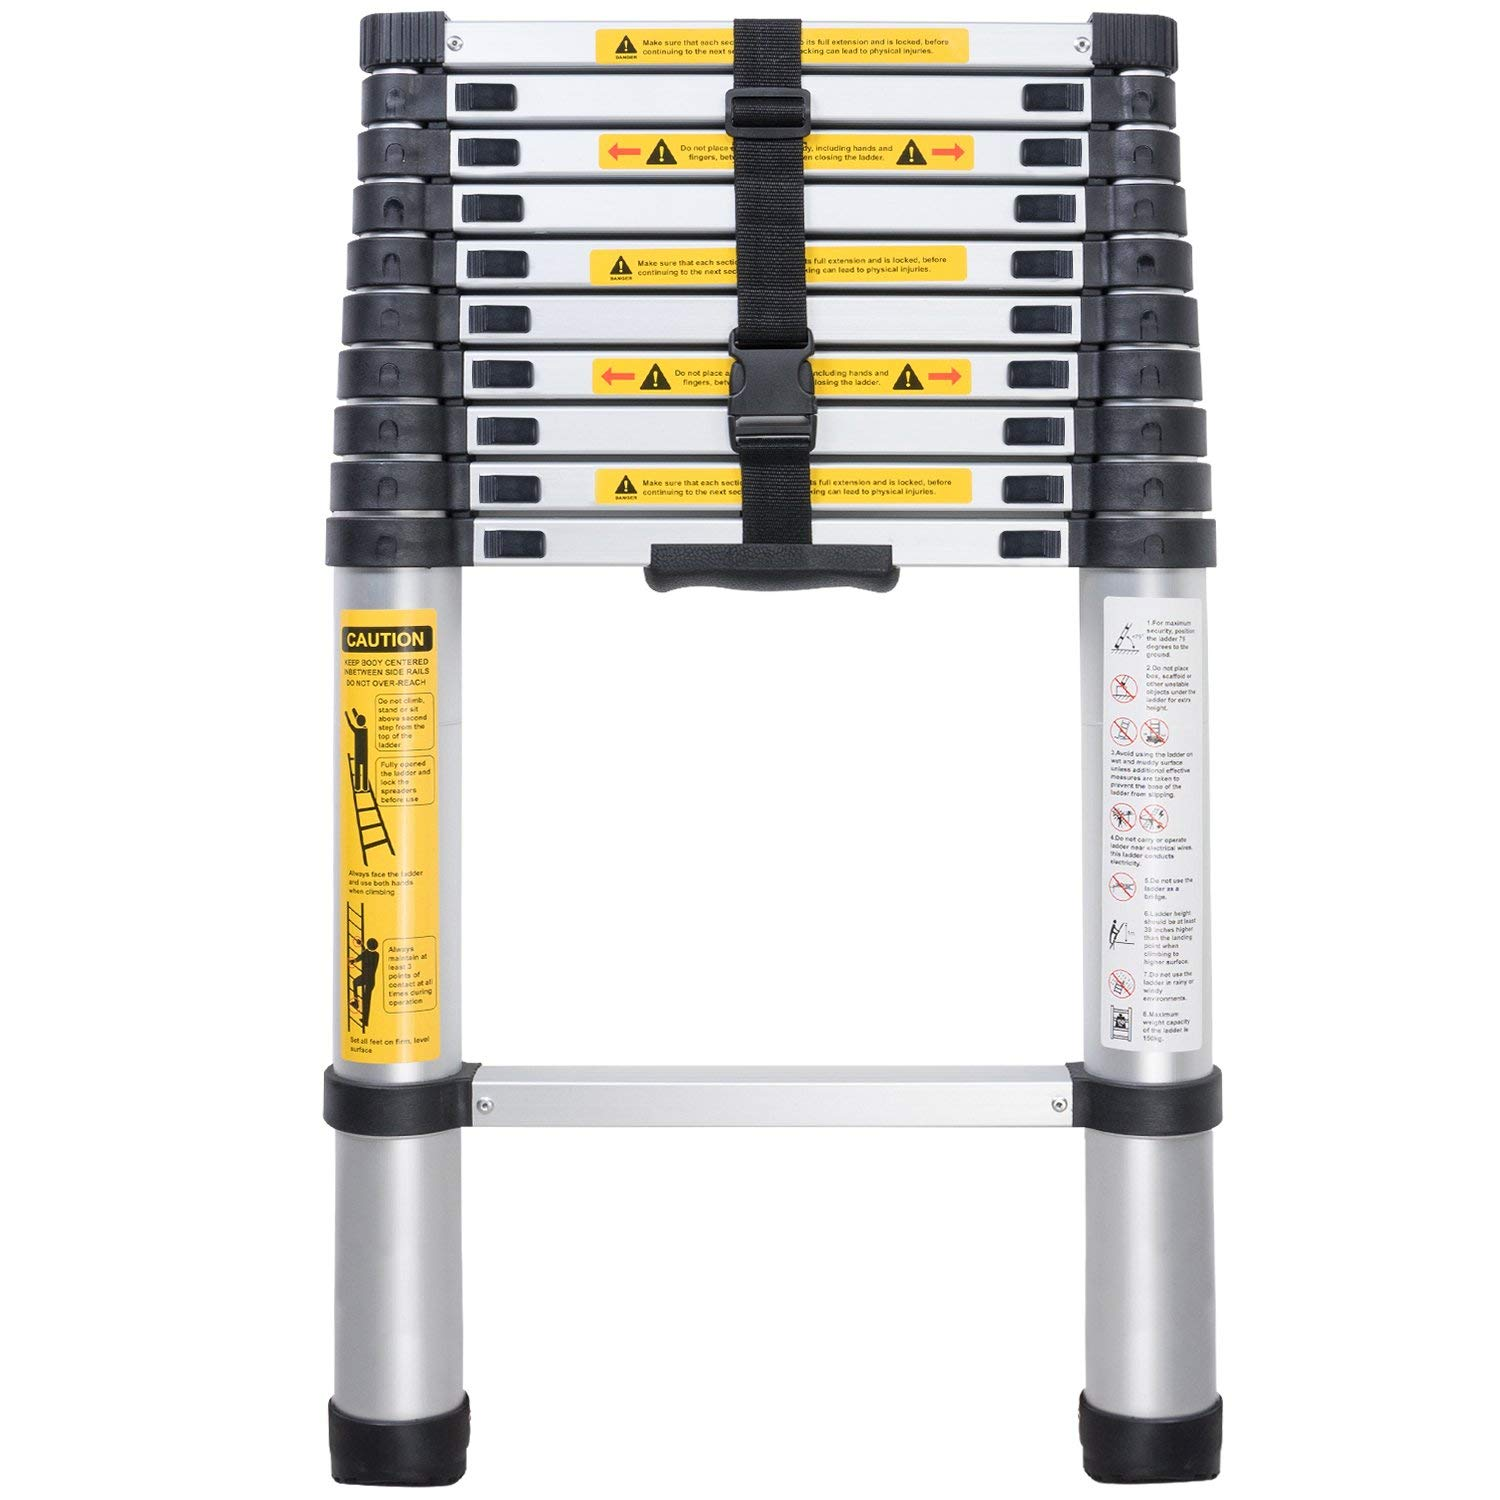 Telescopic Ladder EN131 10.5ft(3.2m)Aluminum Telescopic Extension Tall Multi Purpose Telescopic Ladder